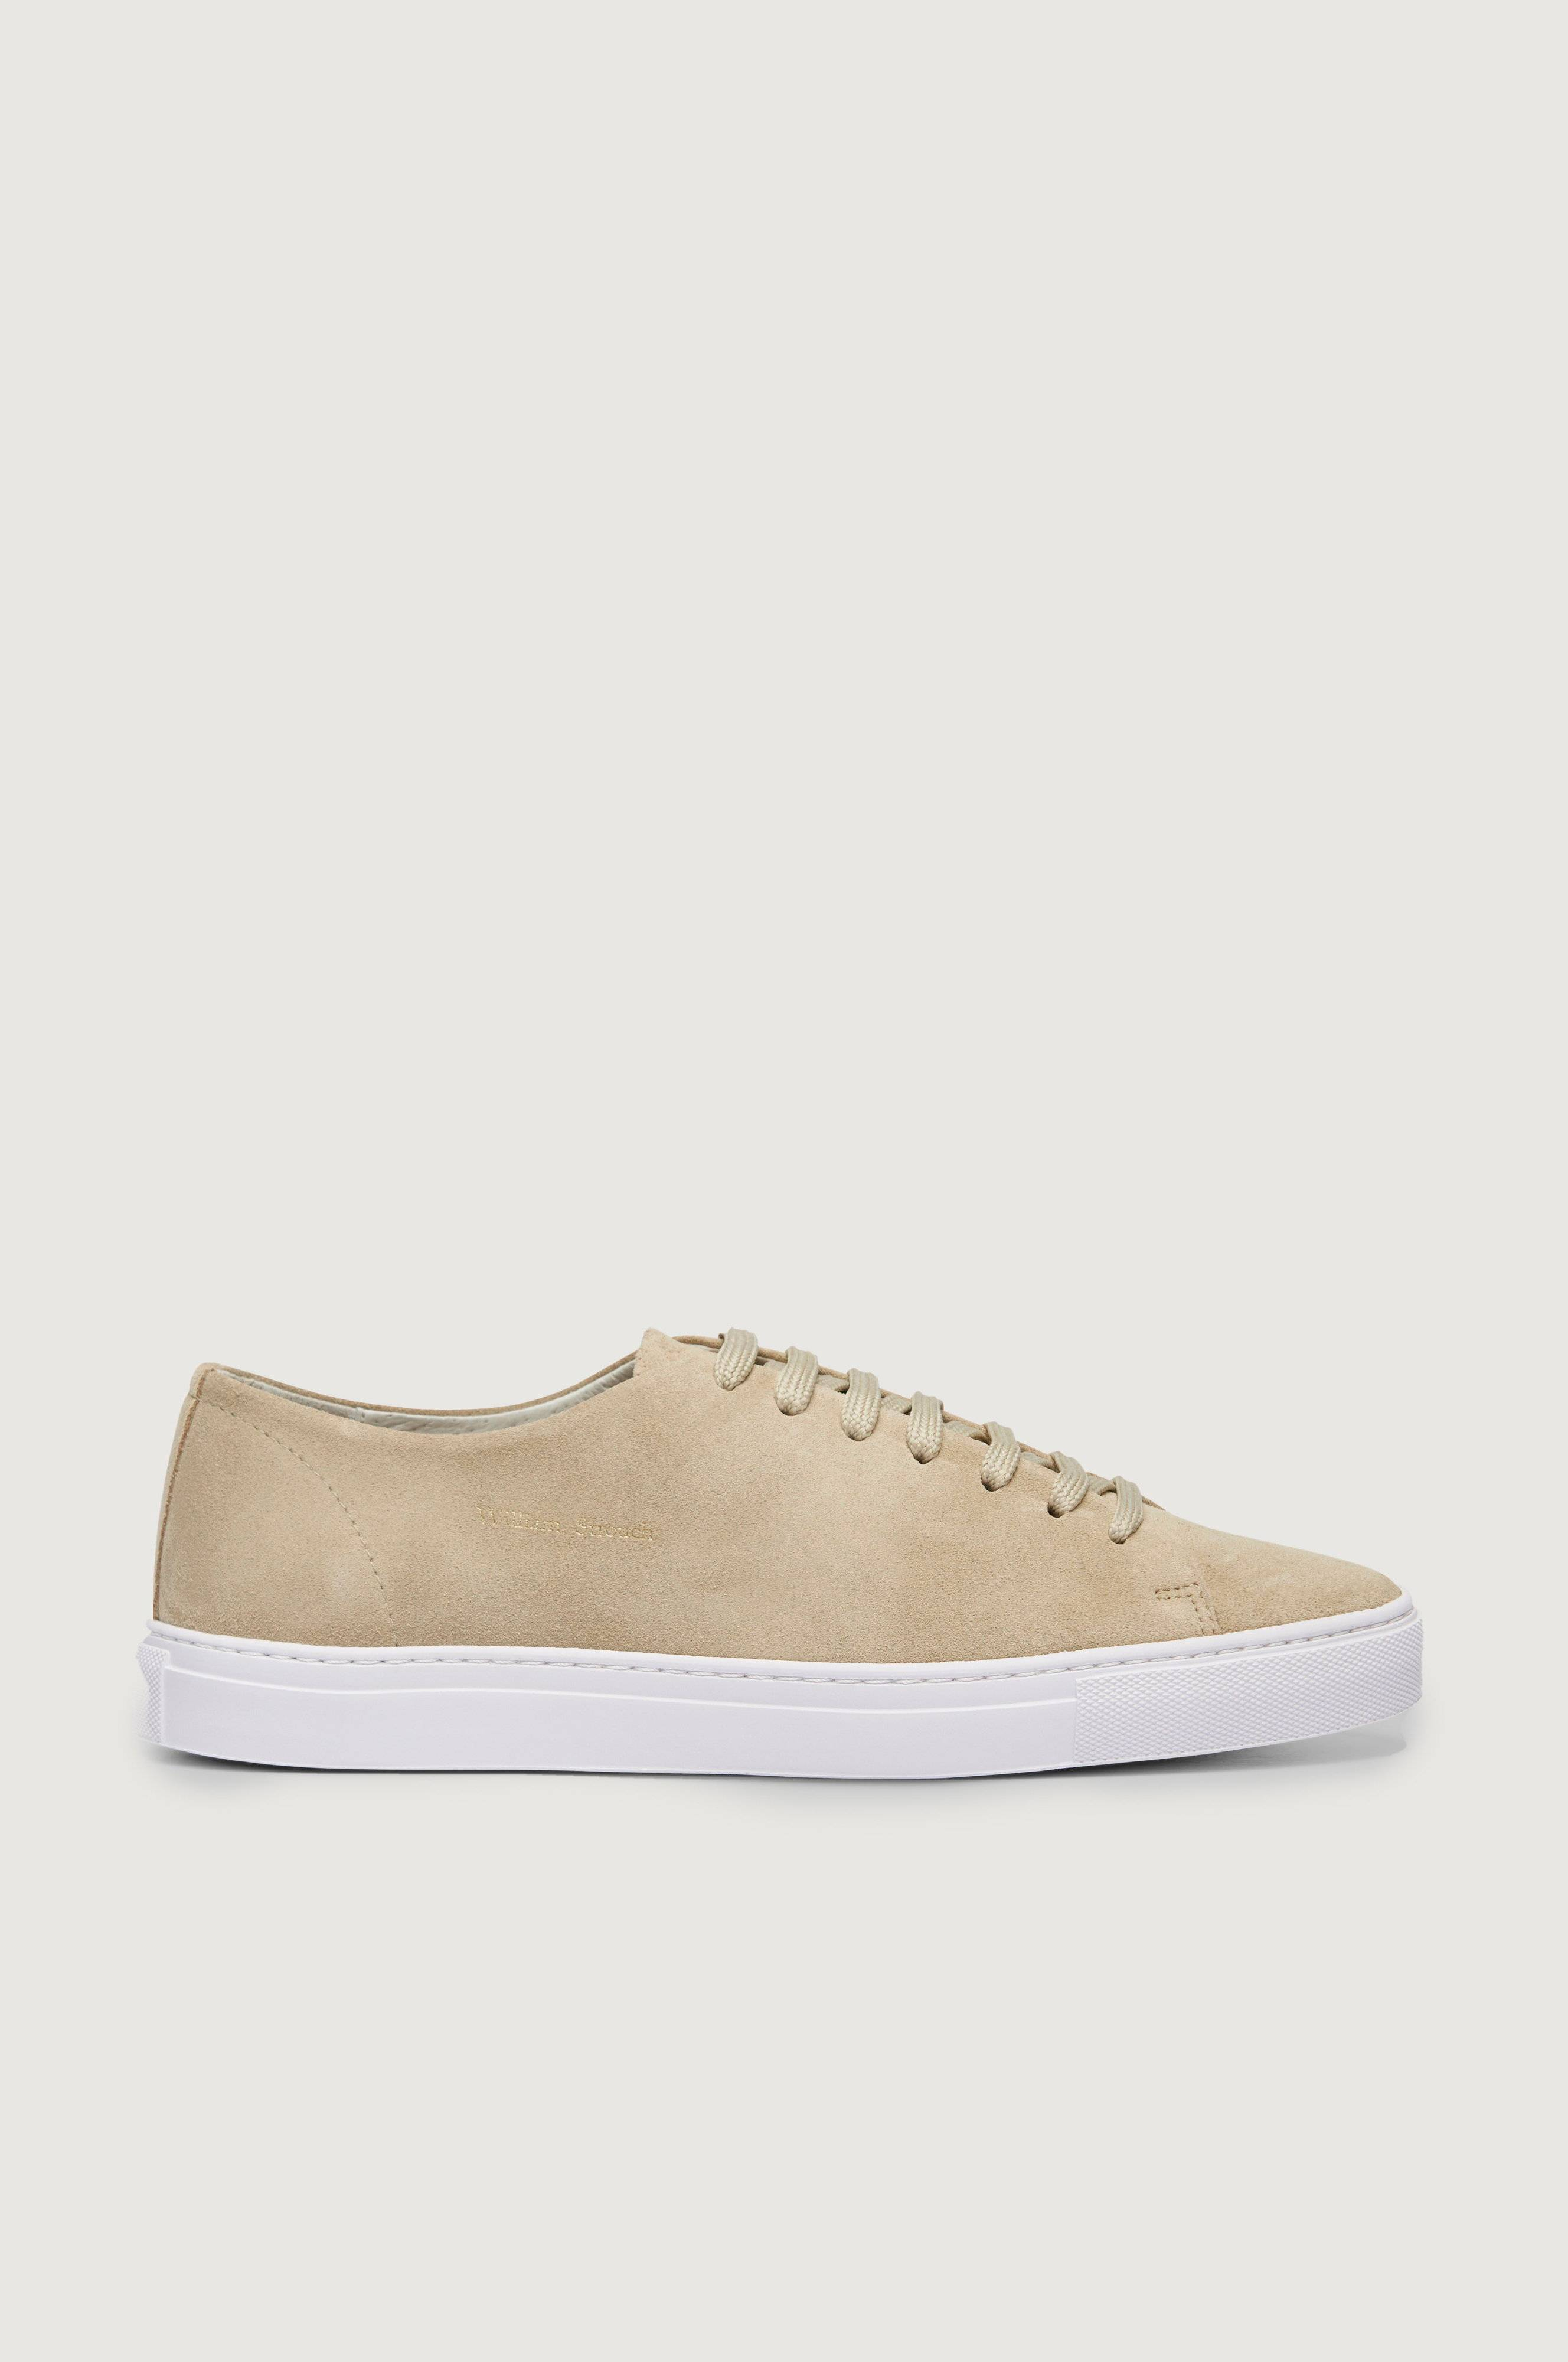 William Strouch SH Classic Suede Sneakers Brun